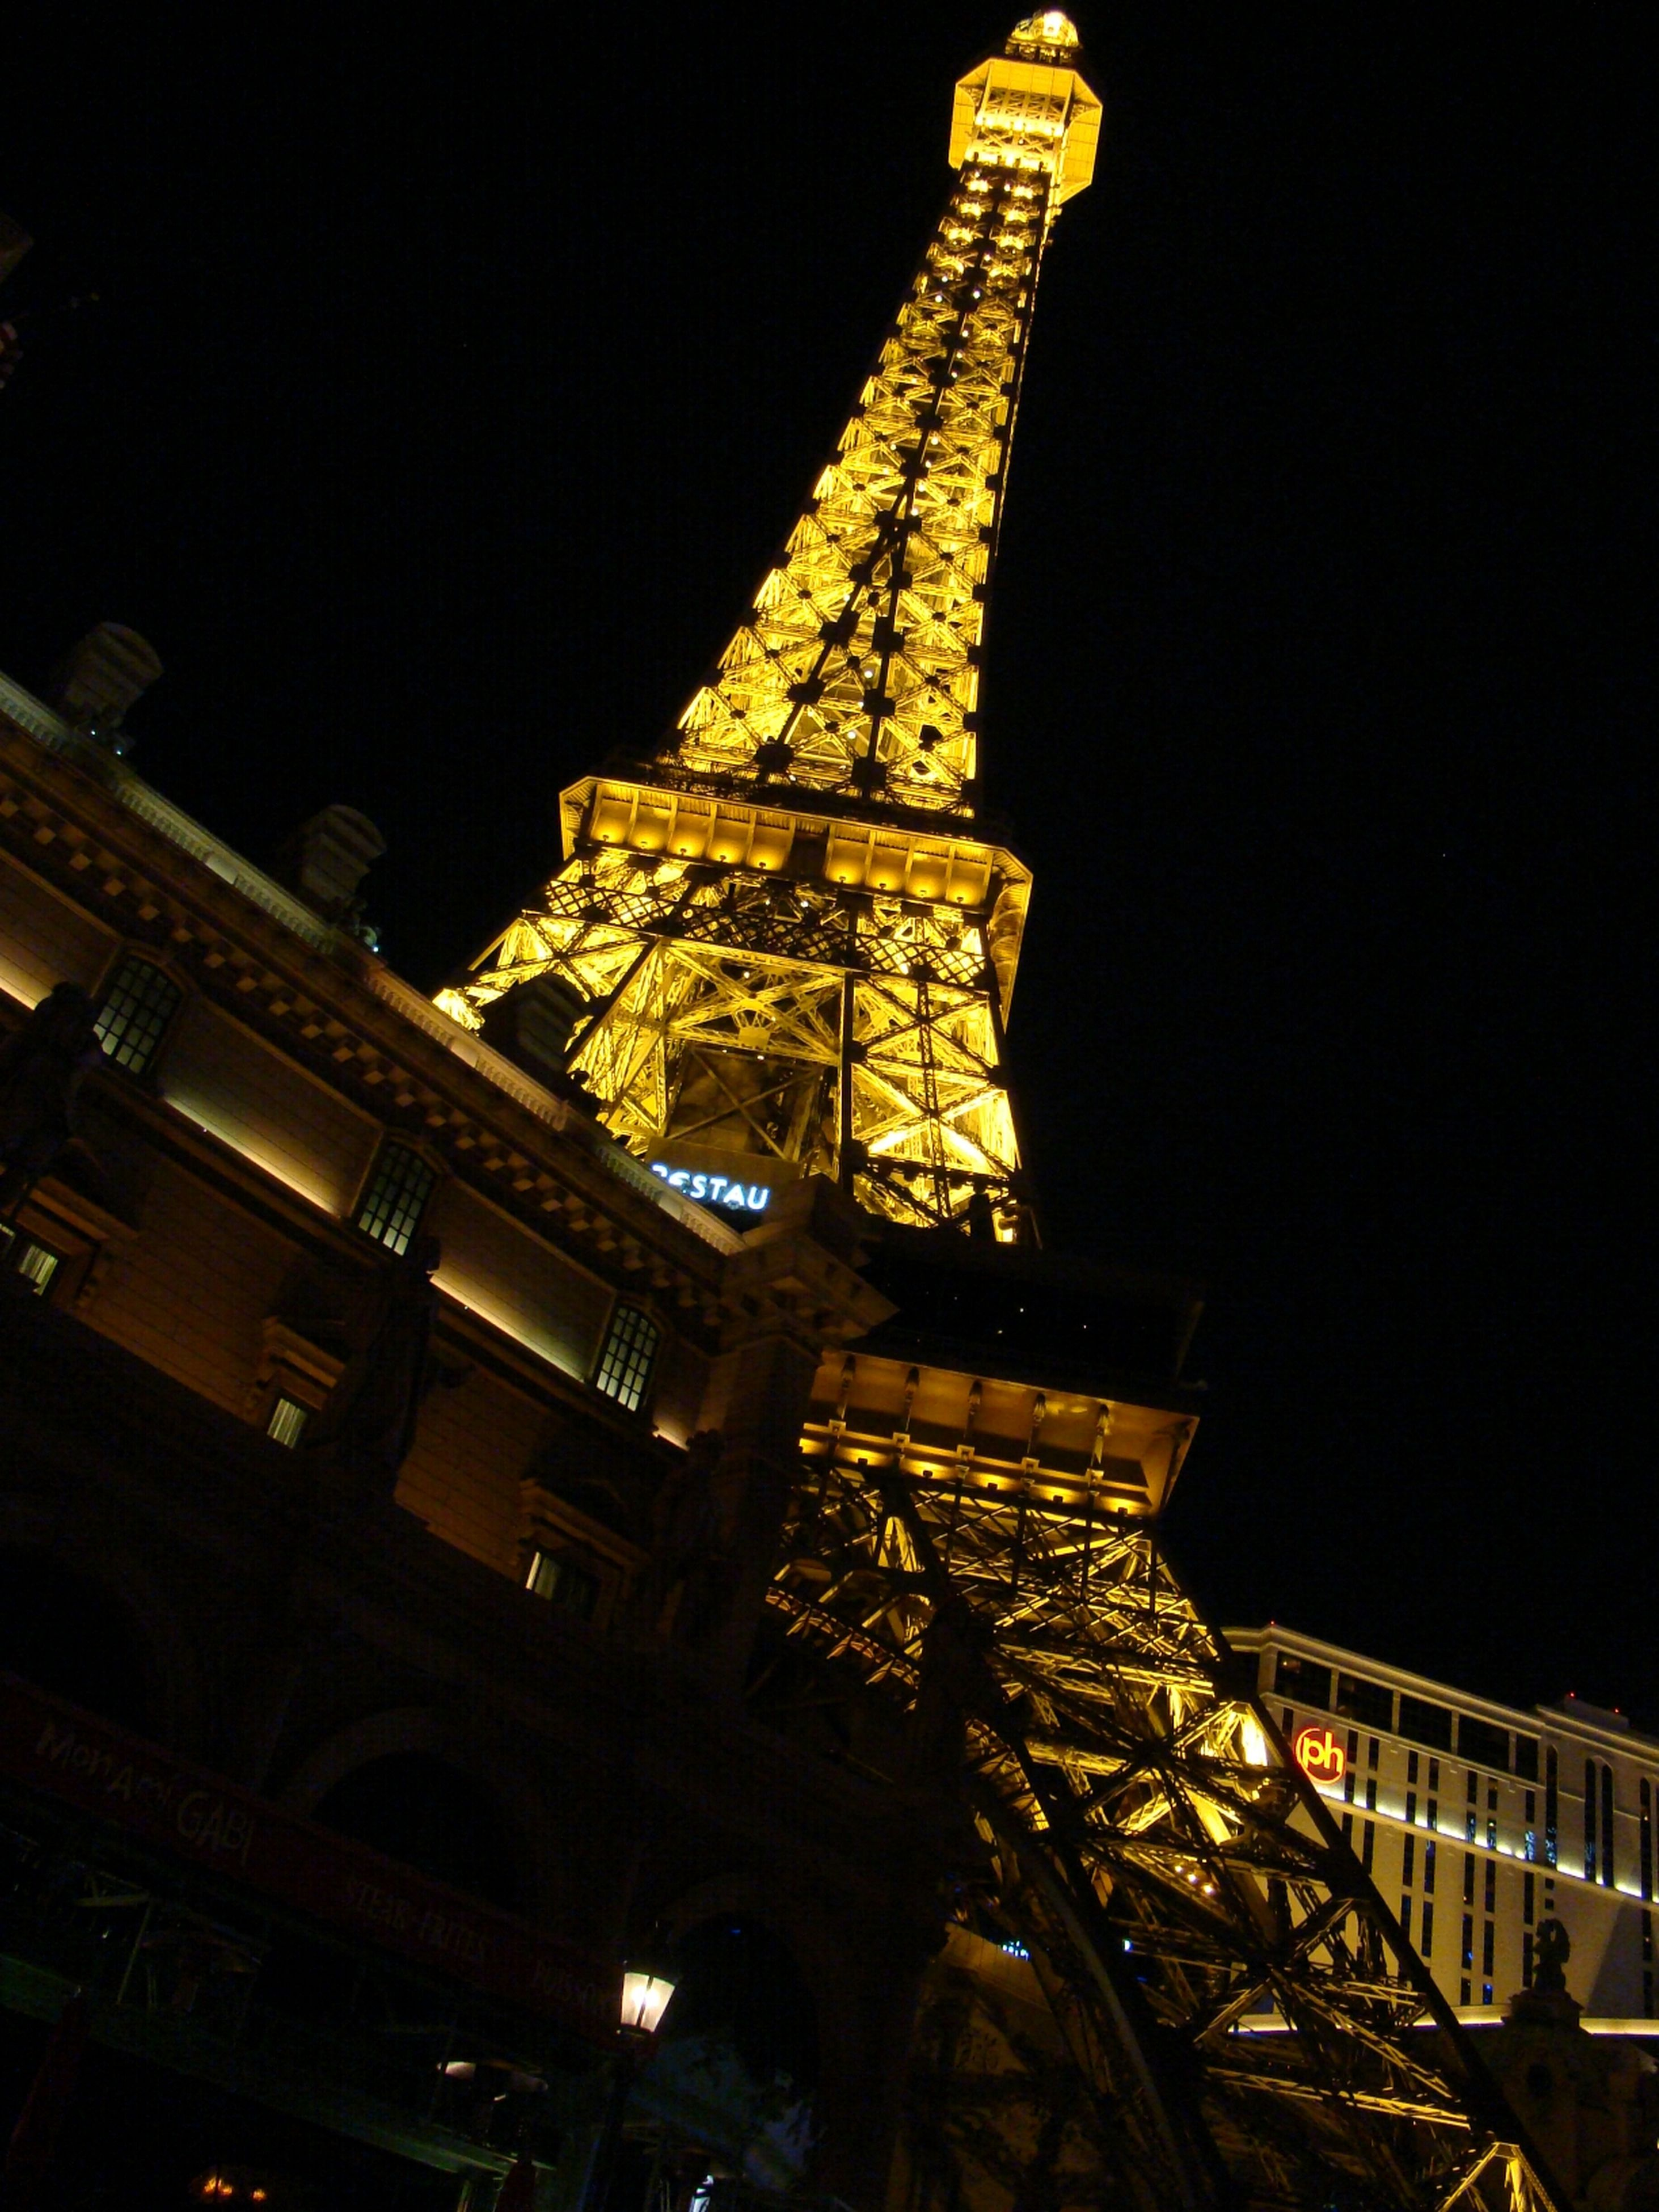 architecture, built structure, building exterior, night, illuminated, famous place, travel destinations, international landmark, clear sky, tourism, low angle view, capital cities, city, travel, tower, history, tall - high, copy space, religion, place of worship